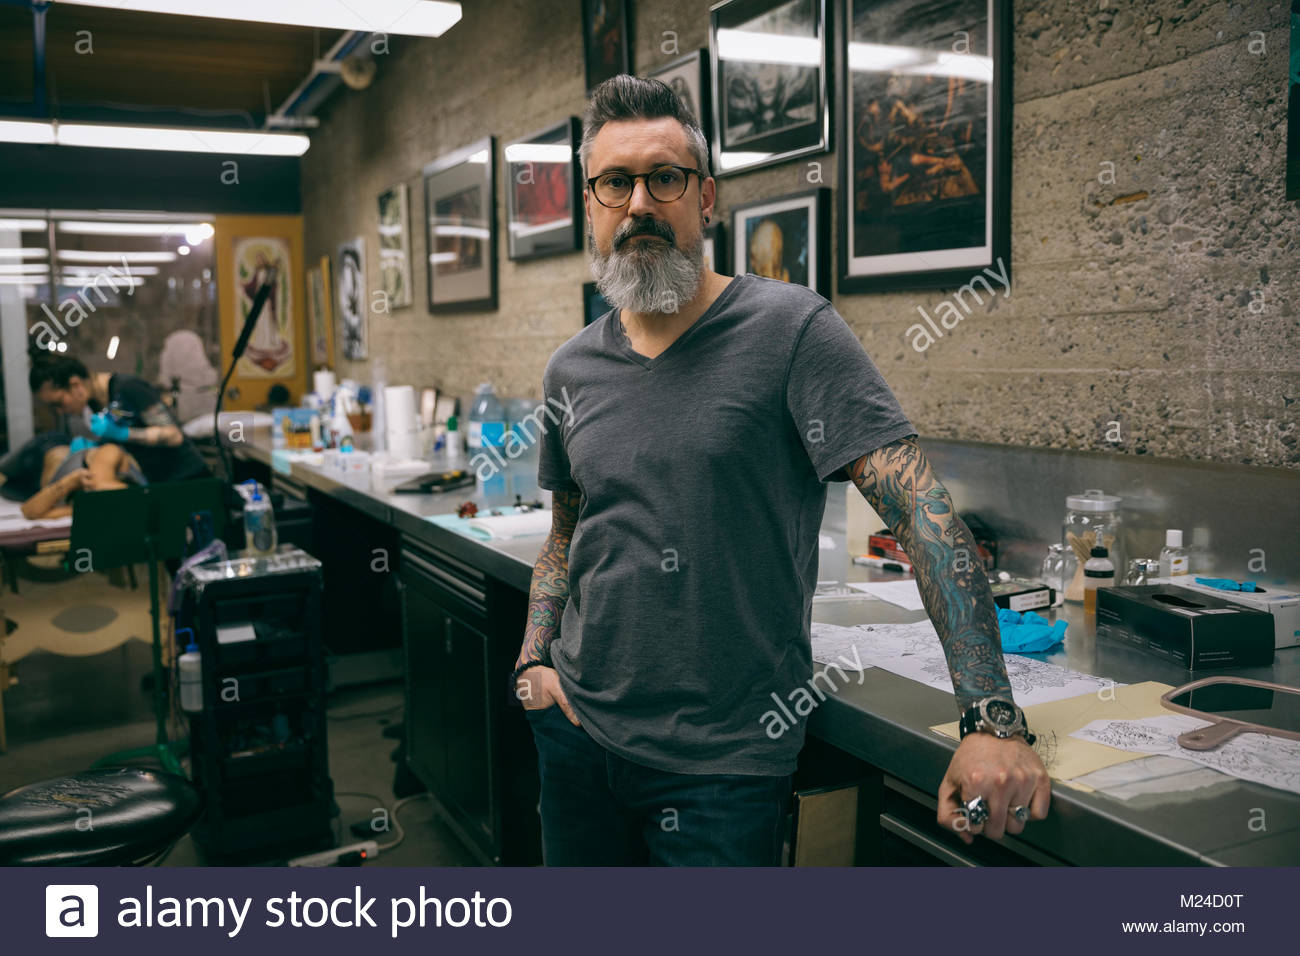 Portrait confiant dans tatoueur tattoo studio Photo Stock